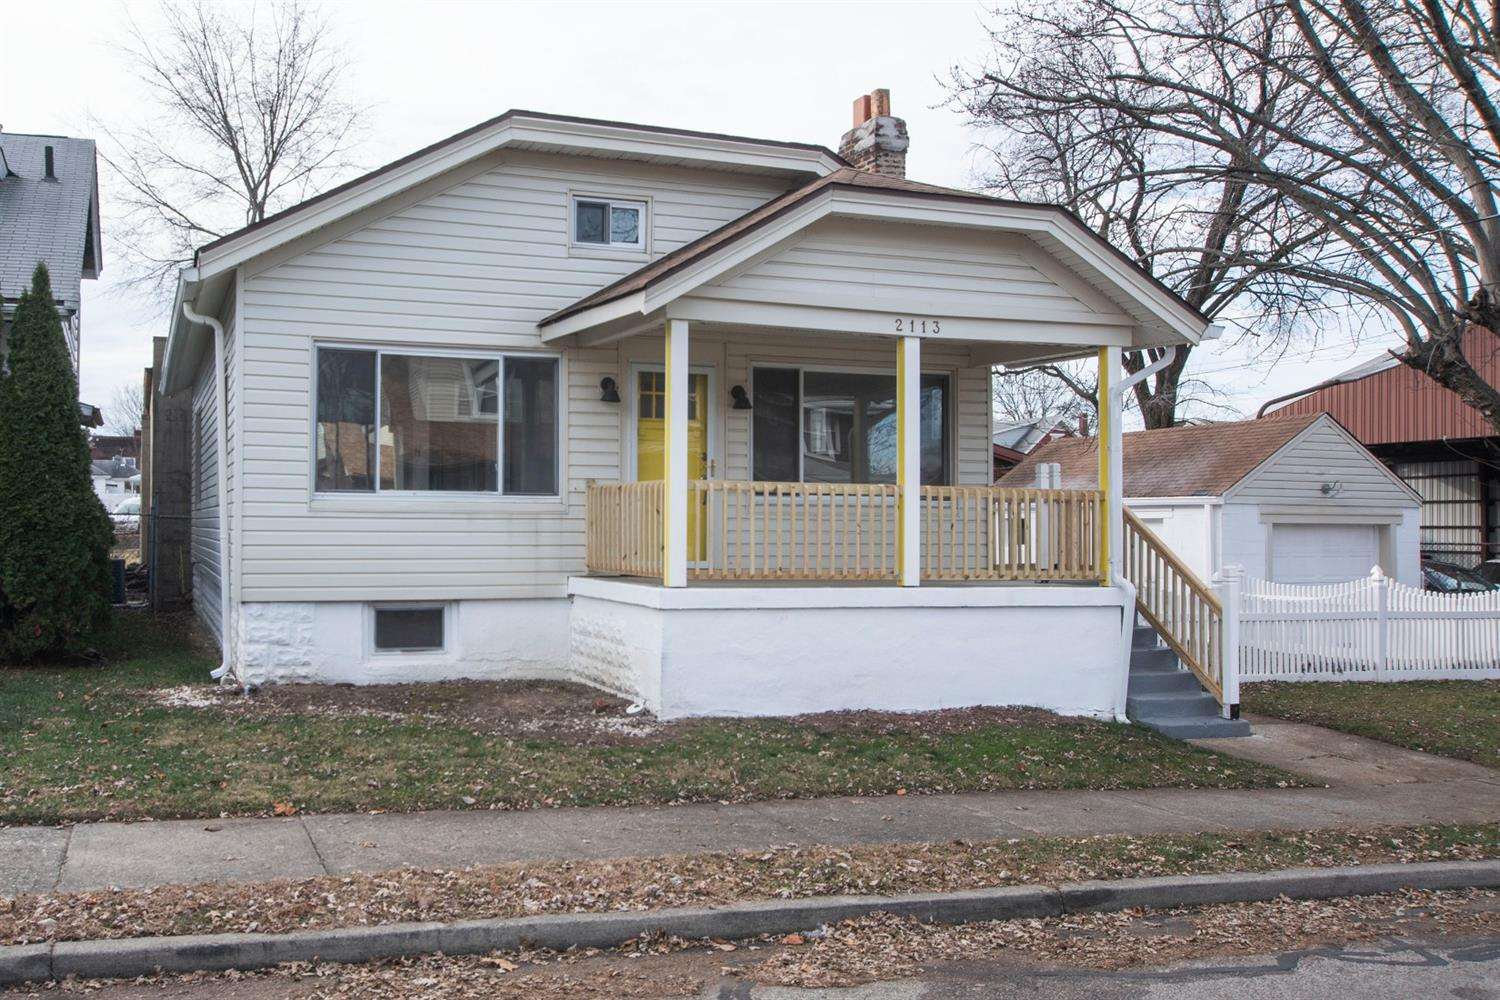 Property for sale at 2113 Quatman Avenue, Norwood,  OH 45212